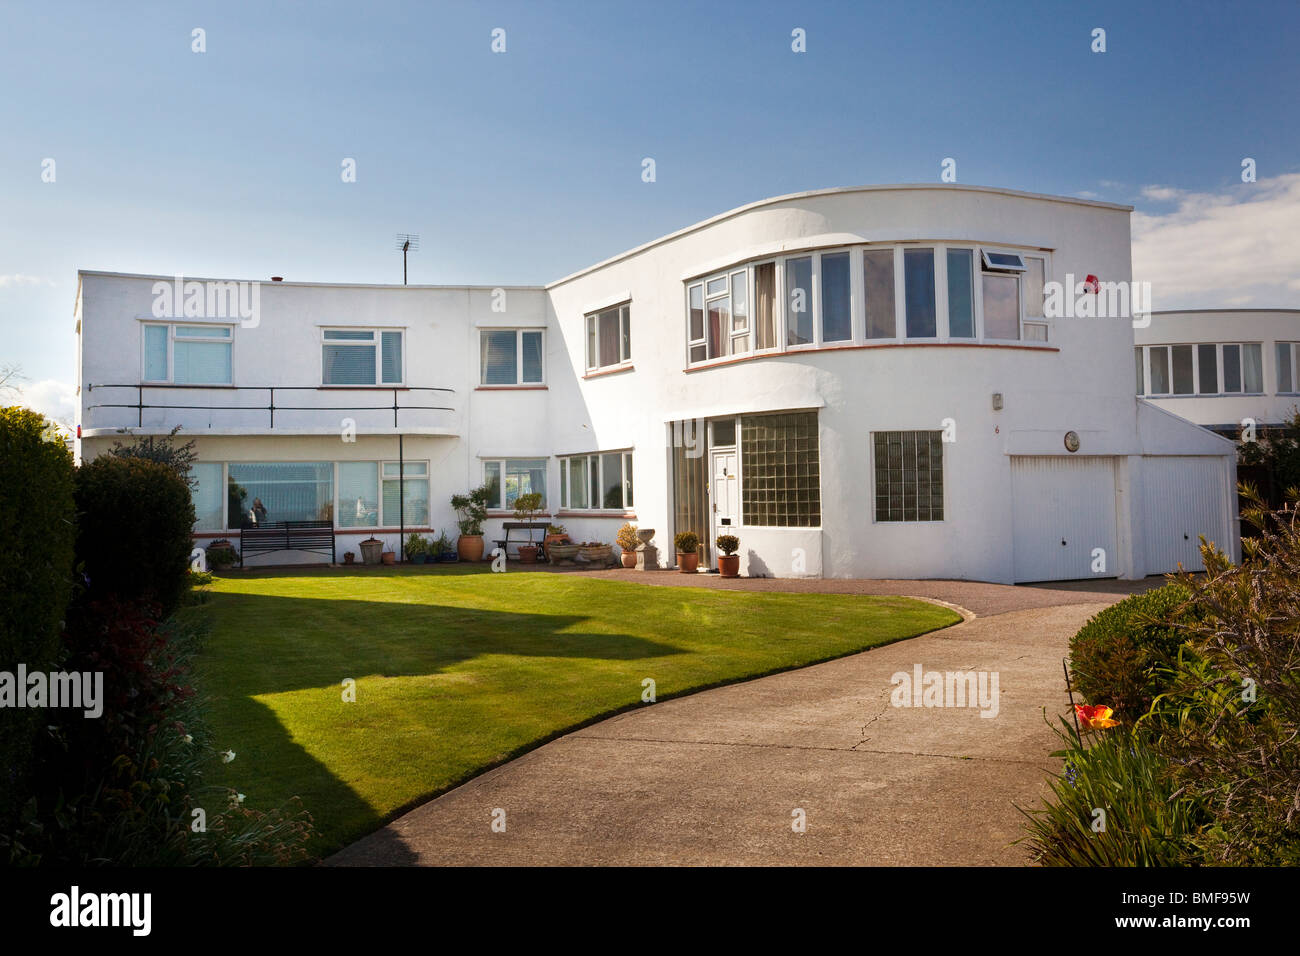 modern Art Deco style house at Frinton On Sea, Essex, UK